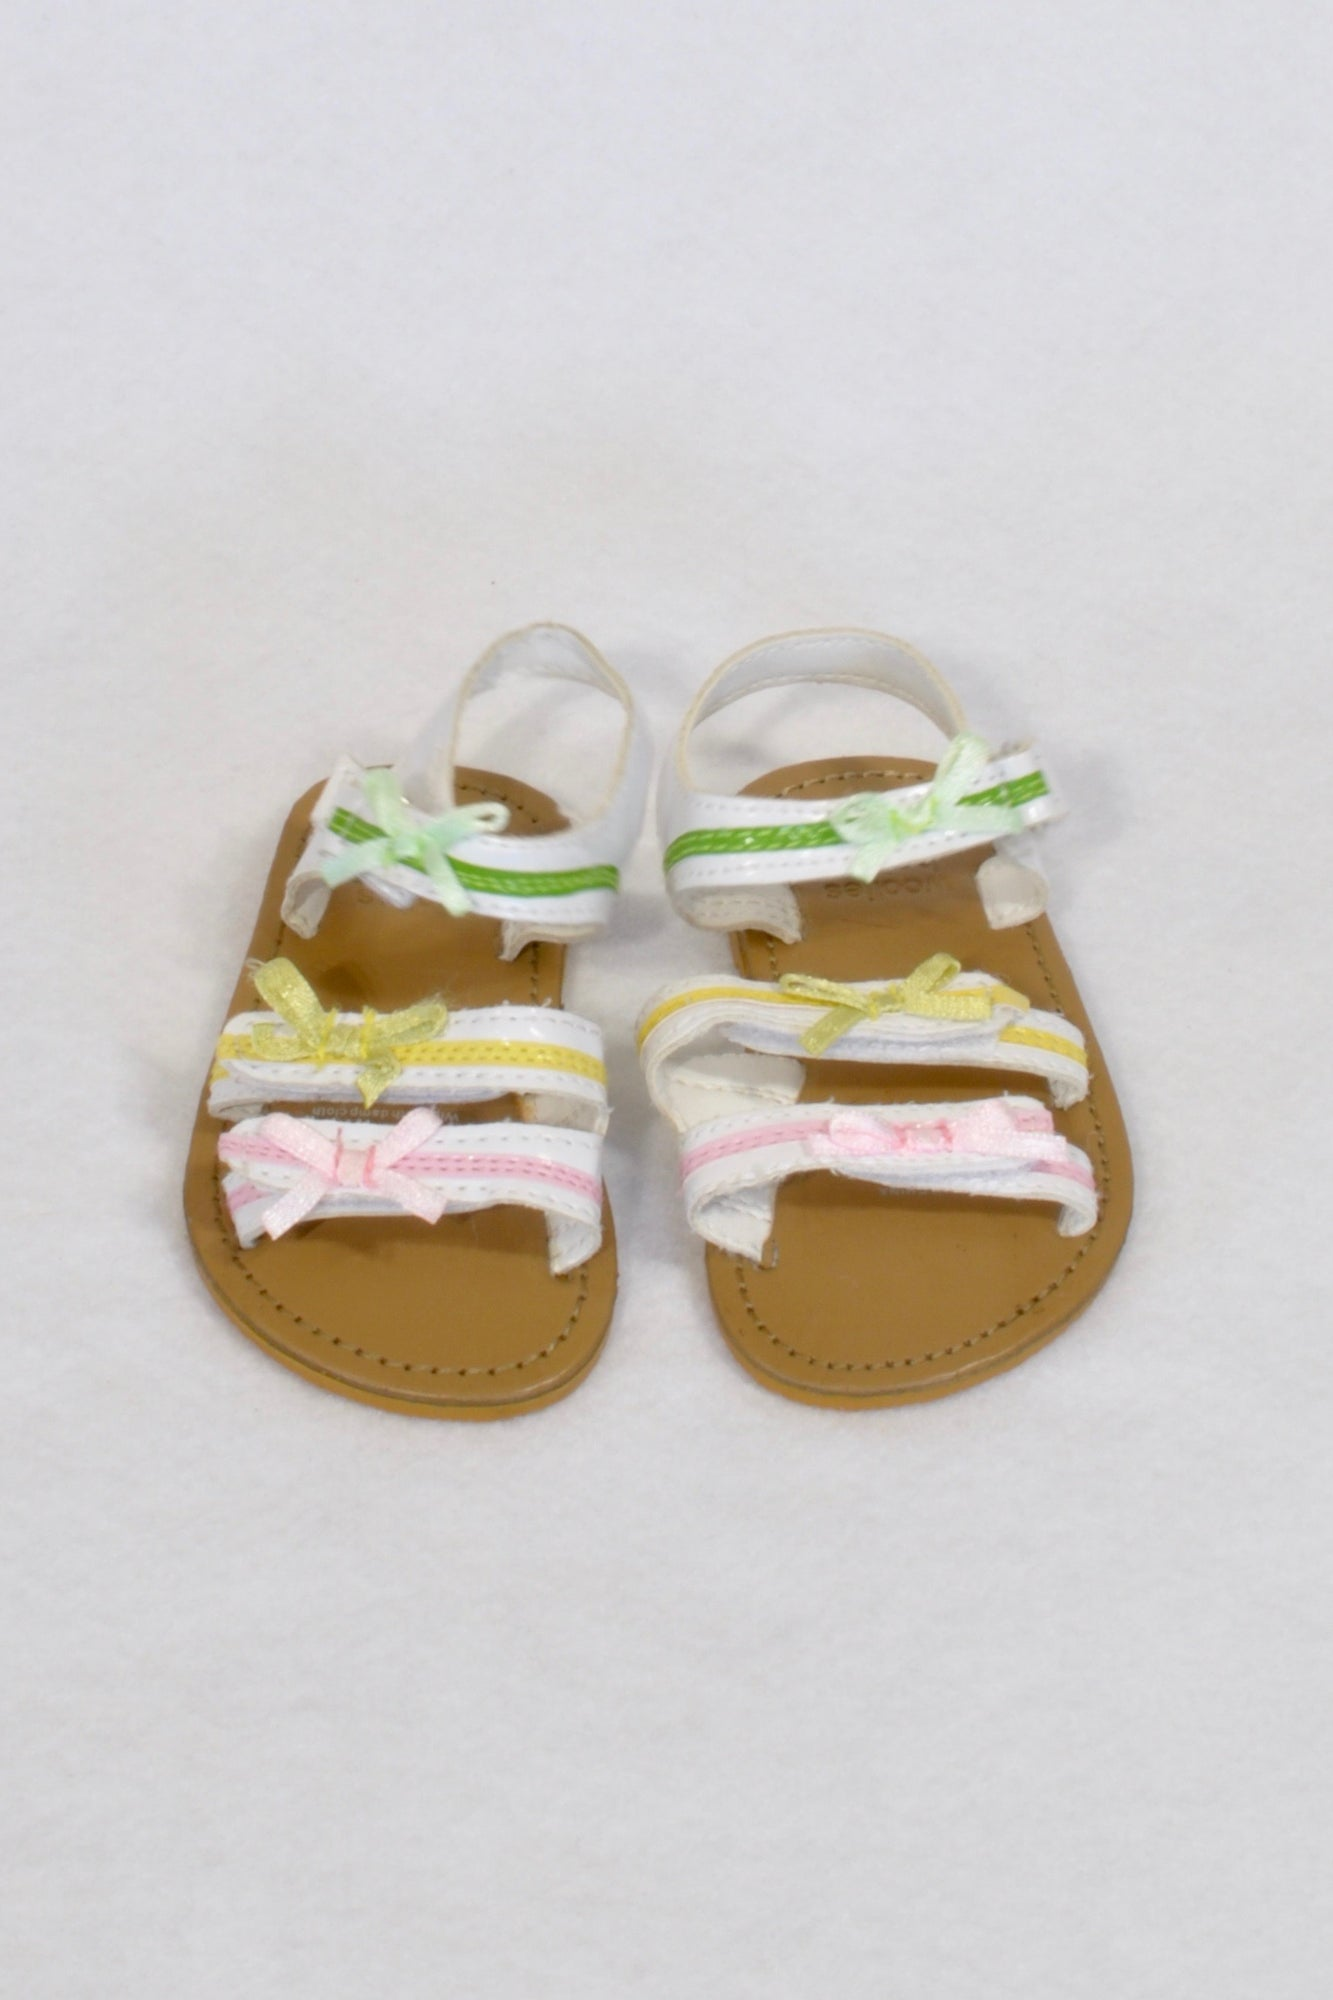 Woolworths Multi-Coloured Strap Size 2 Sandals Girls 6-9 months